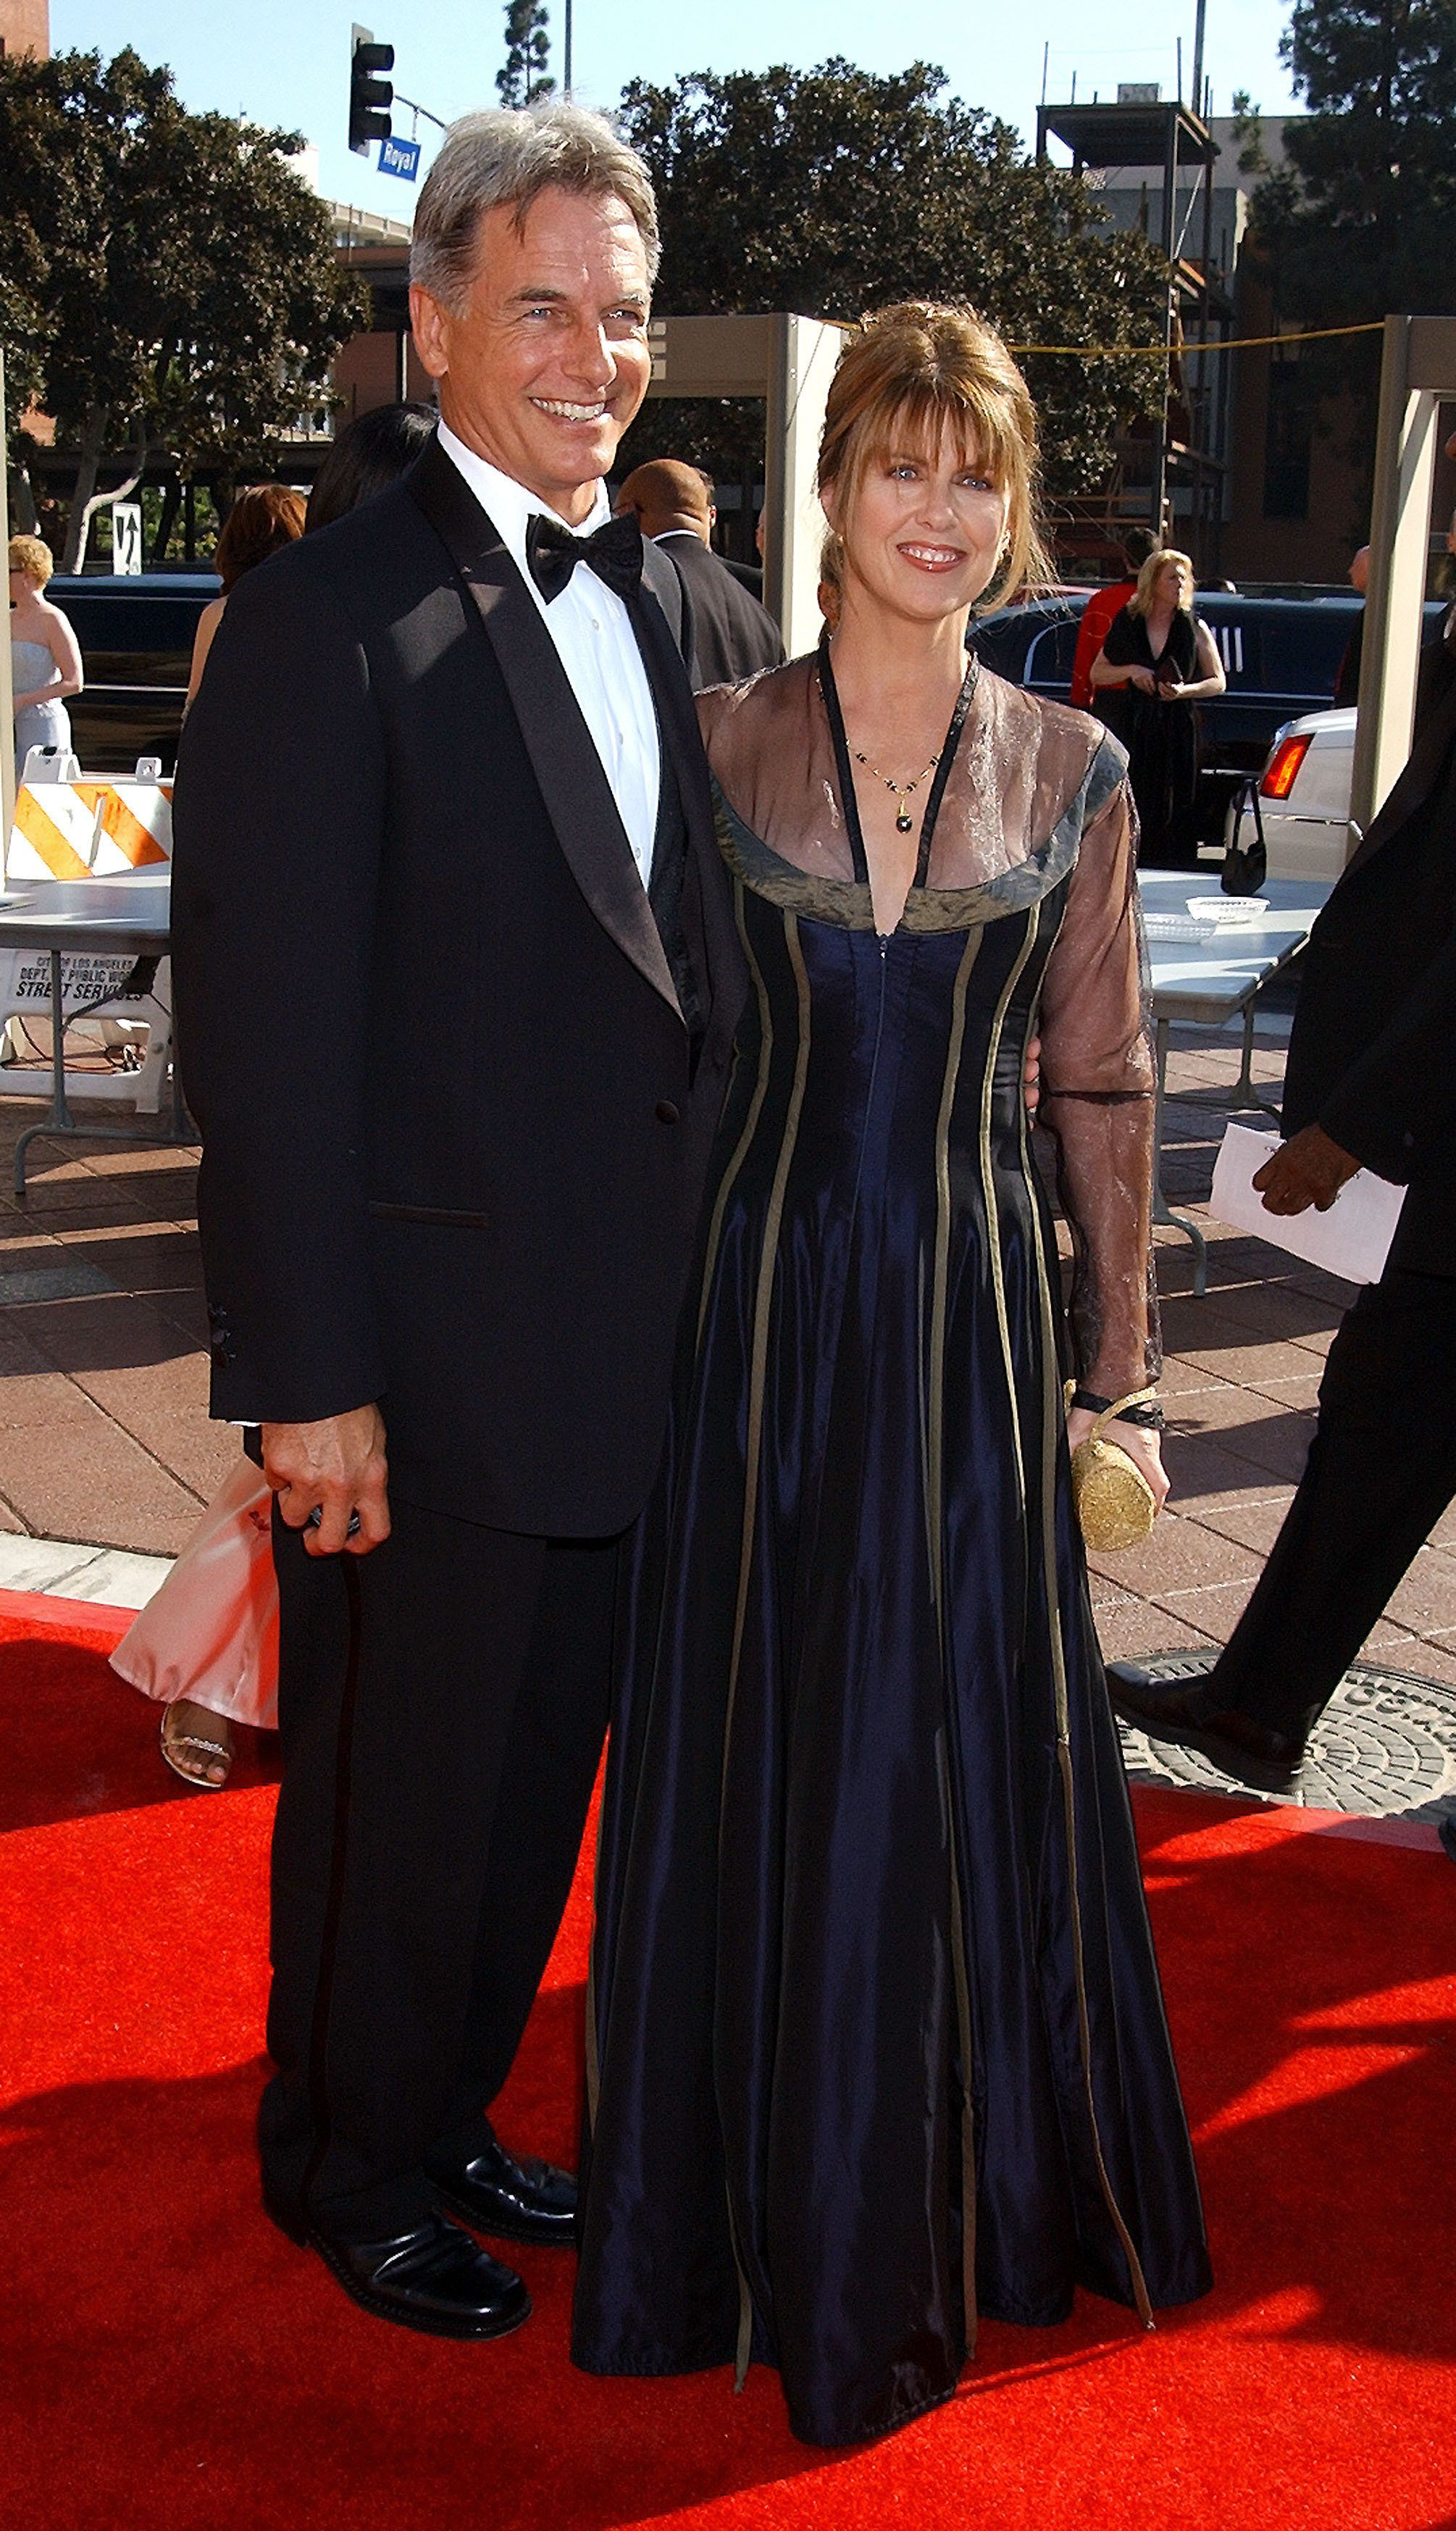 Mark Harmon & Pam Dawber during 2002 Creative Arts Emmy Awards - Arrivals at Shrine Auditorium in Los Angeles, California, United States. (Photo by Gregg DeGuire/WireImage)